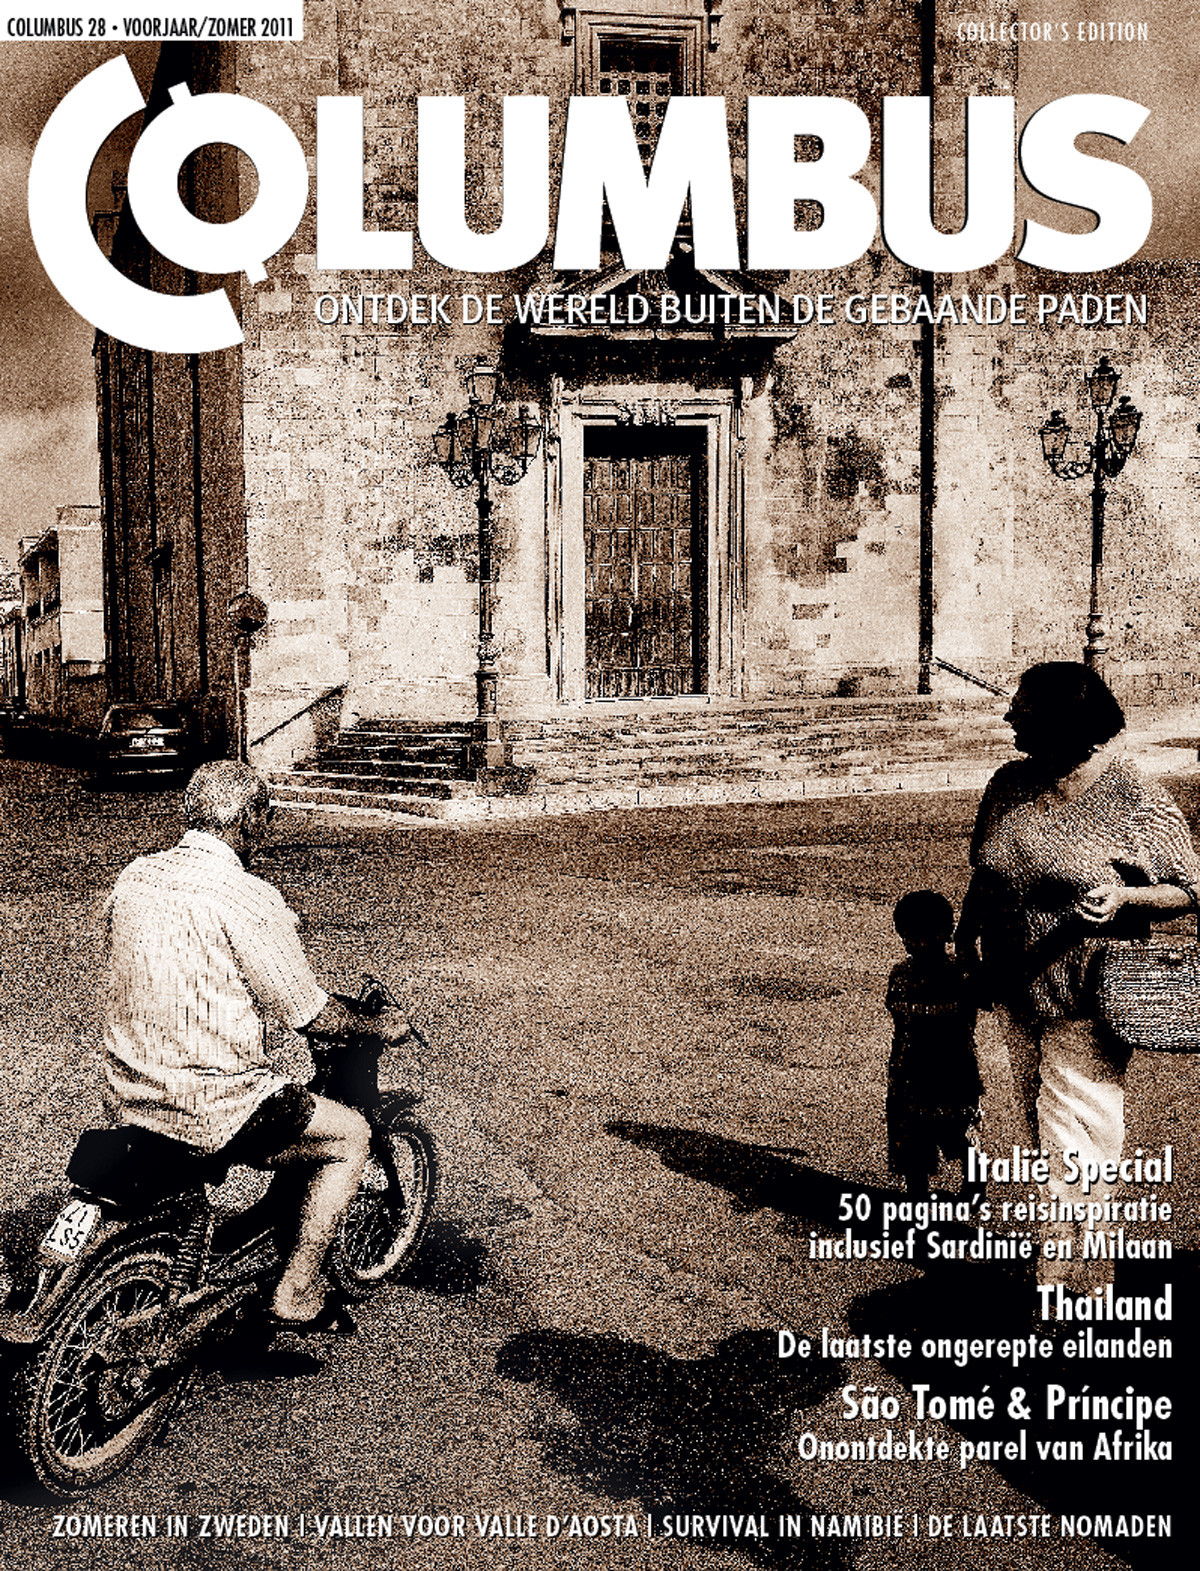 Columbus Travel magazine cover 28